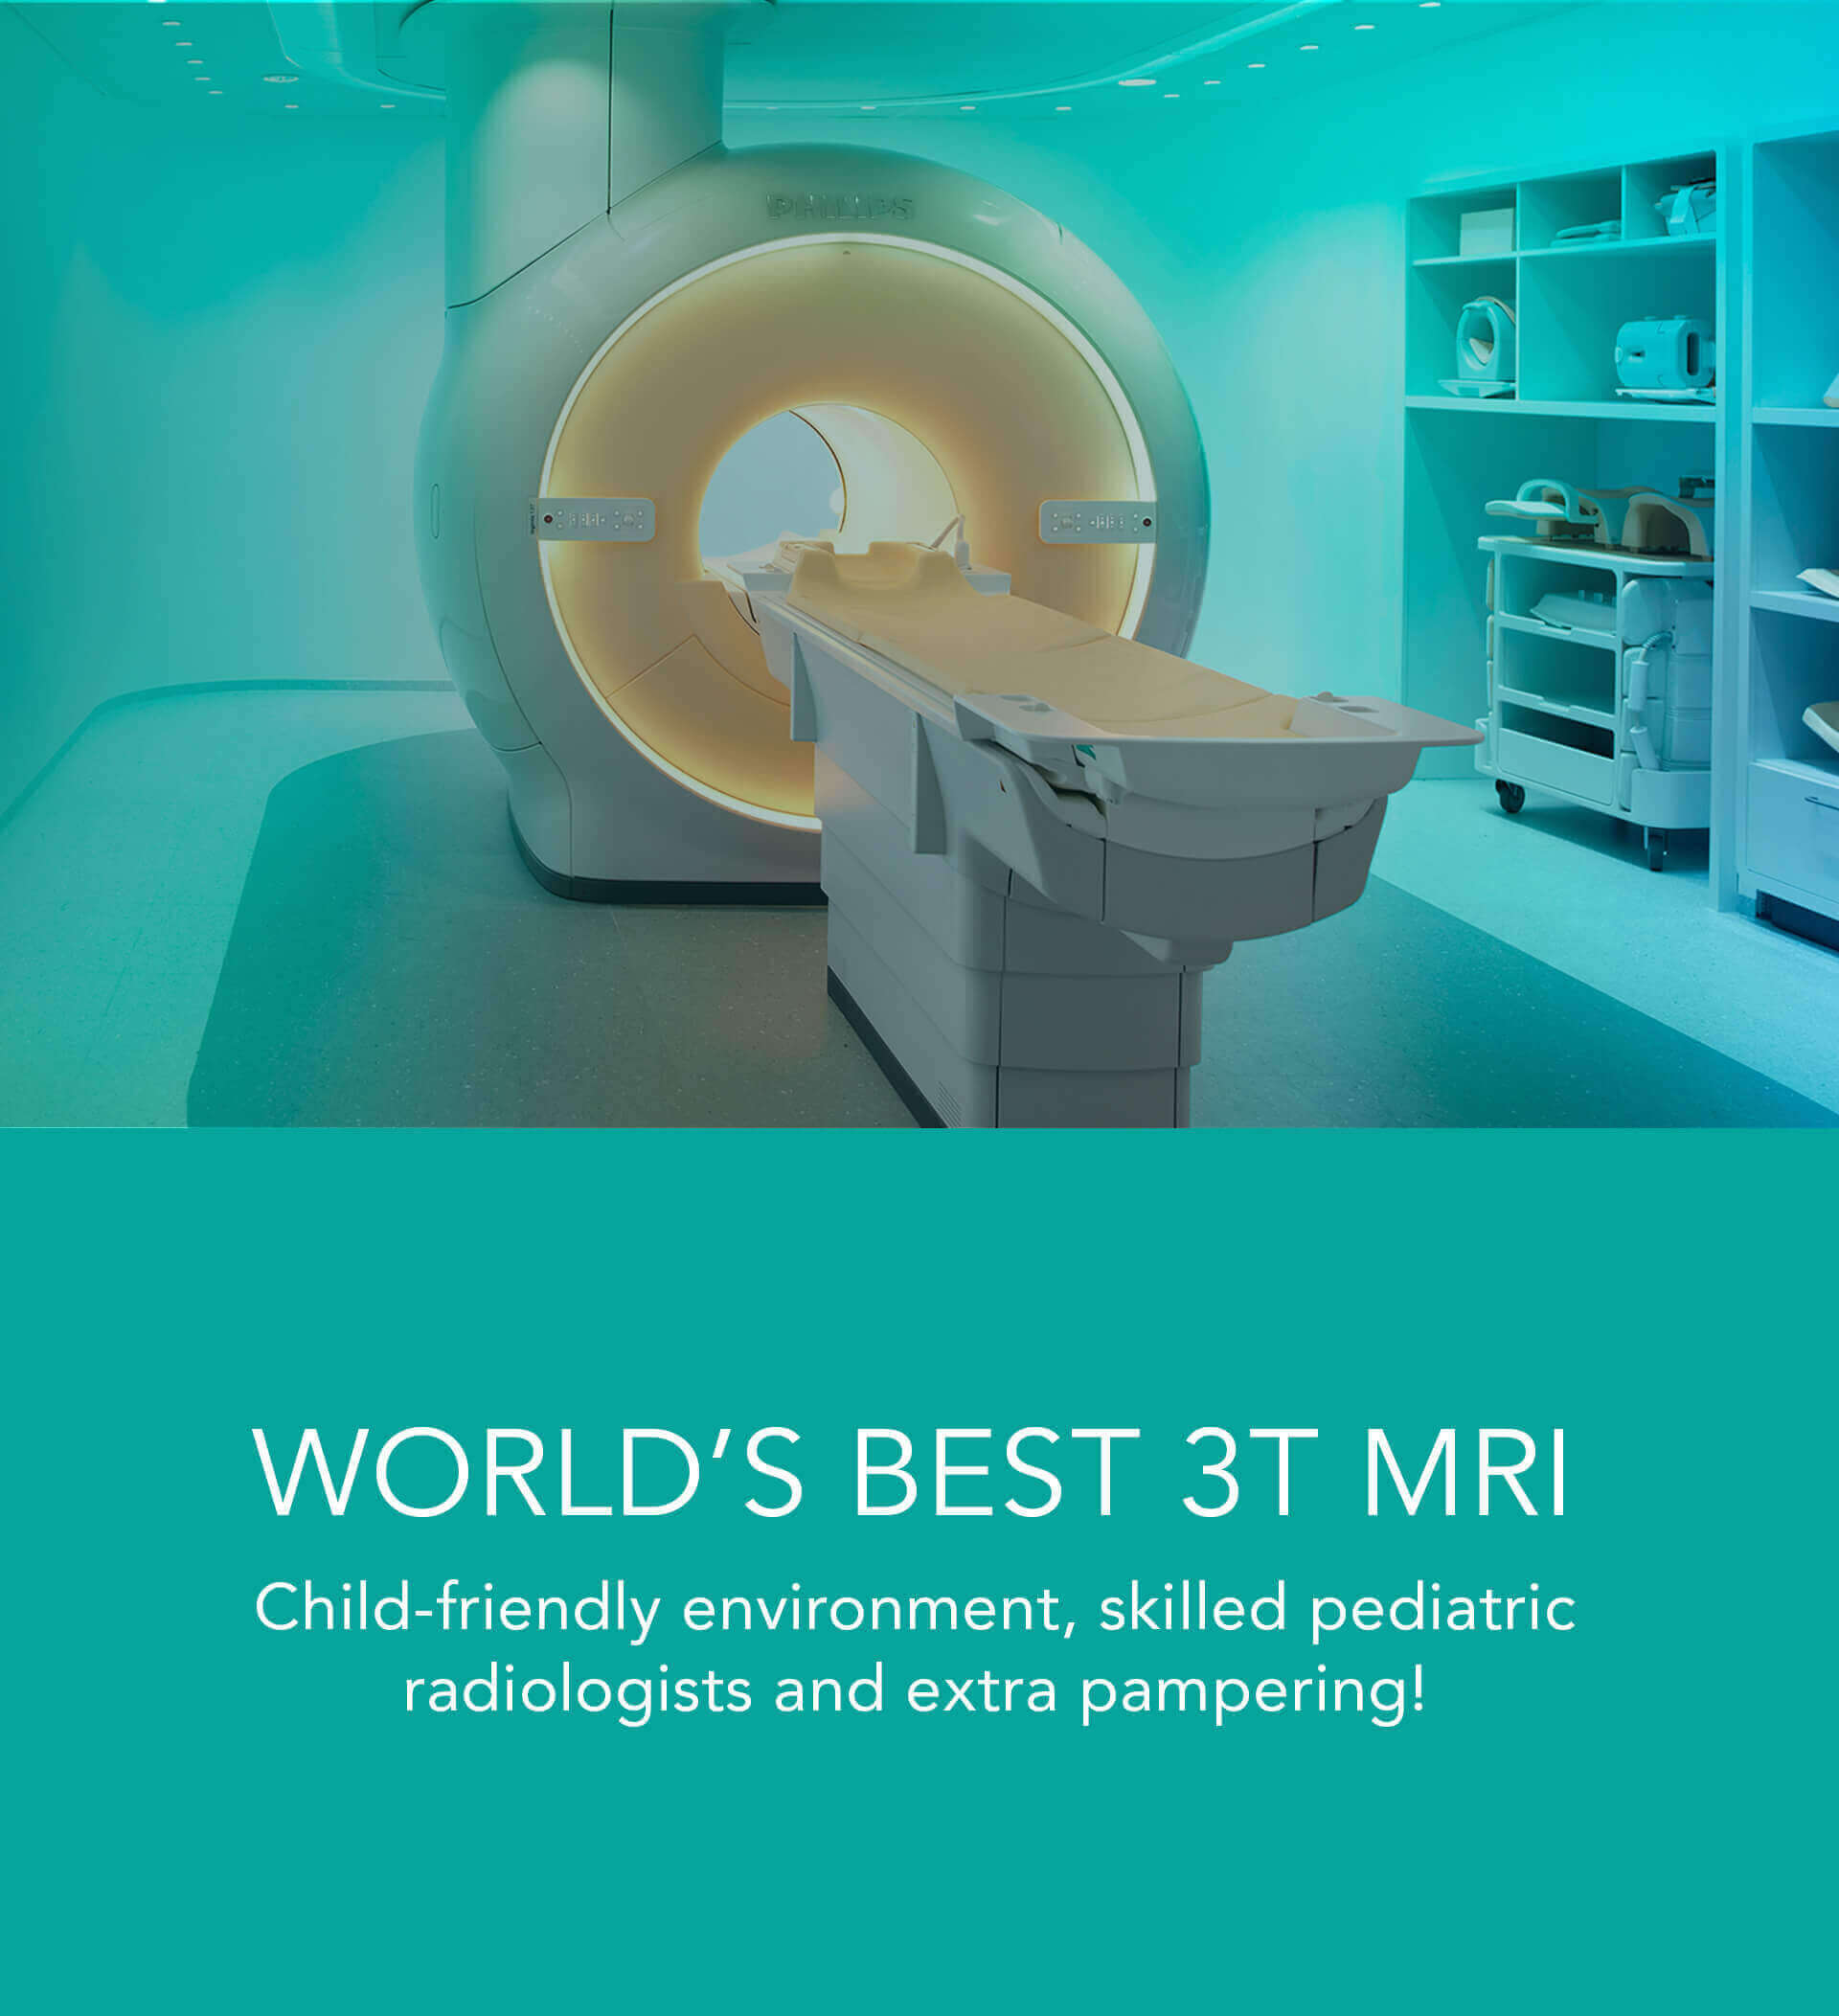 Star Imaging and Research Centre radiologists